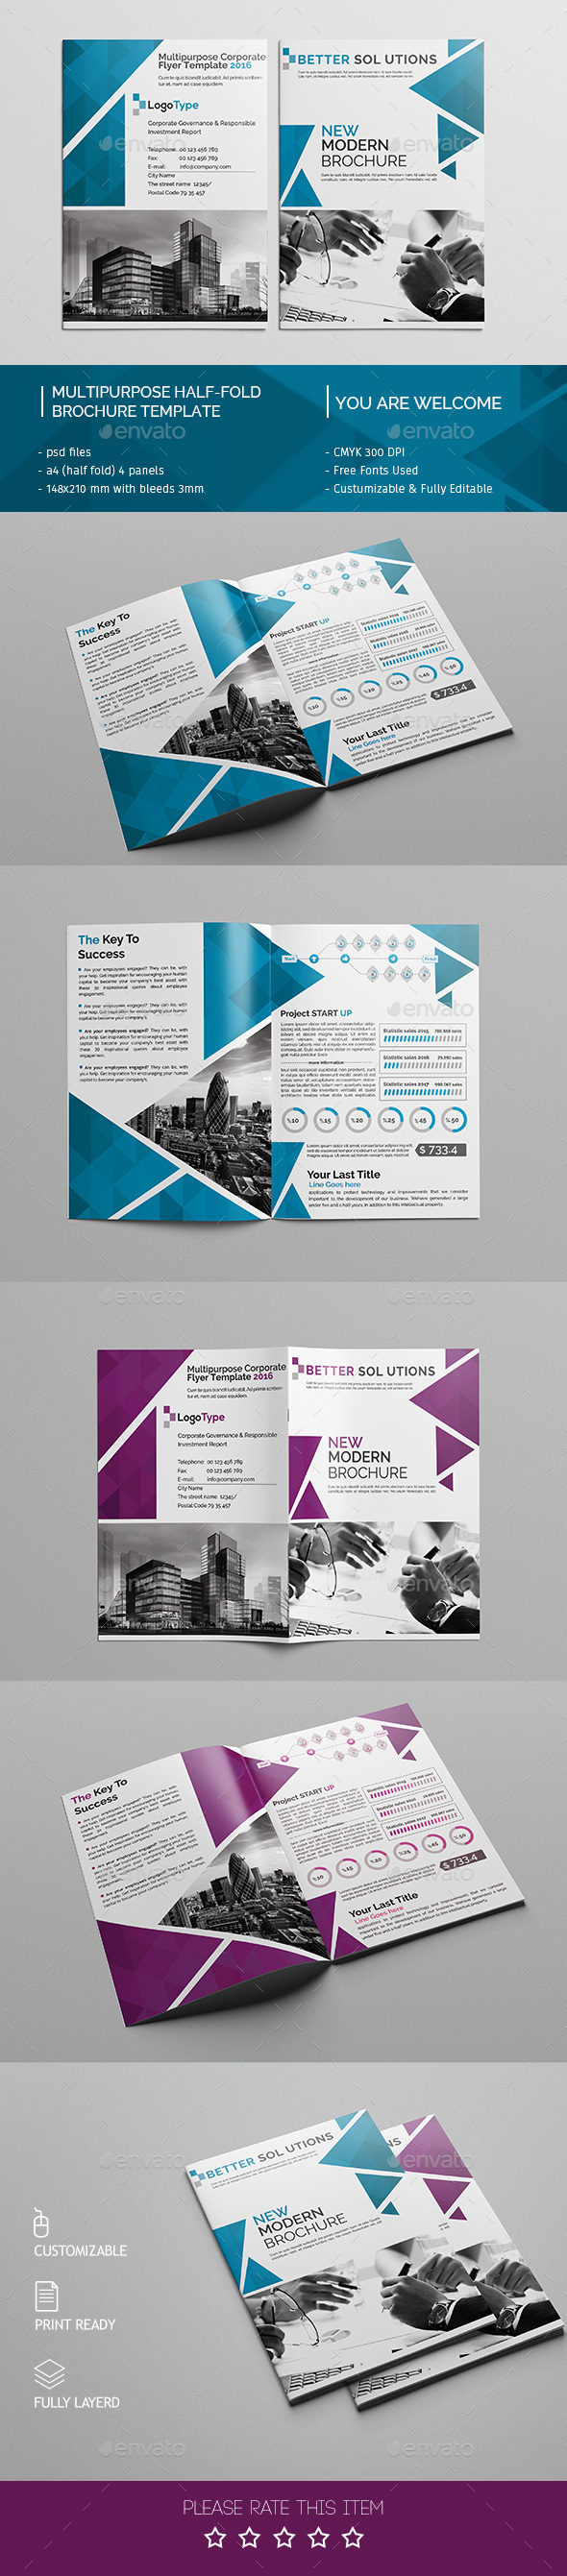 Corporate BiFold Brochure Template   Brochures Design And